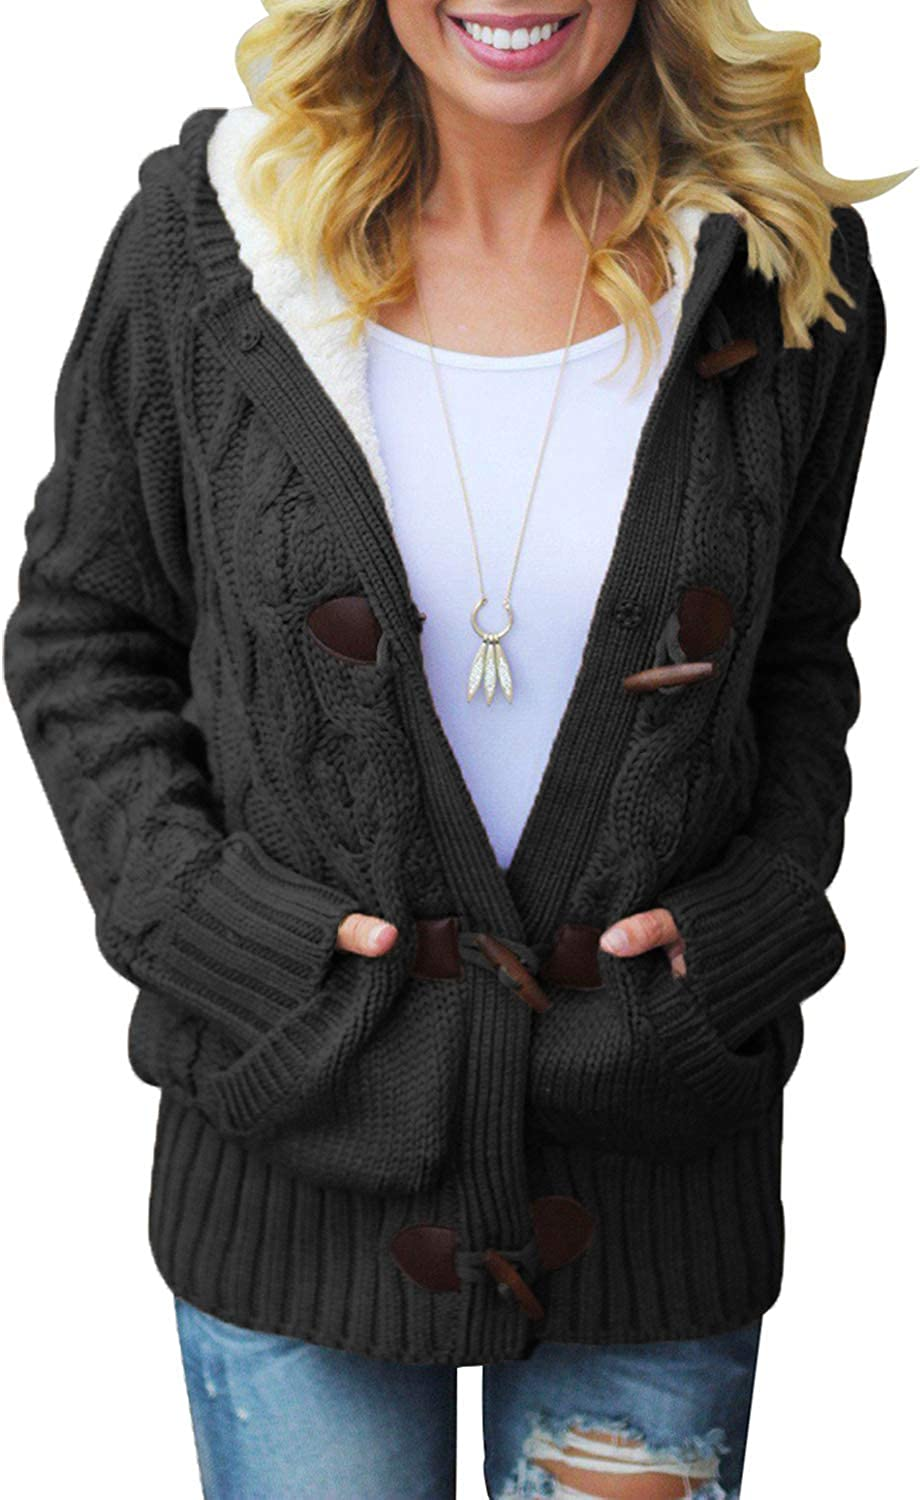 Asvivid Womens Button Down Cable Knit モデル着用&注目アイテム Sw 再入荷 予約販売 Fleece Hooded Cardigans